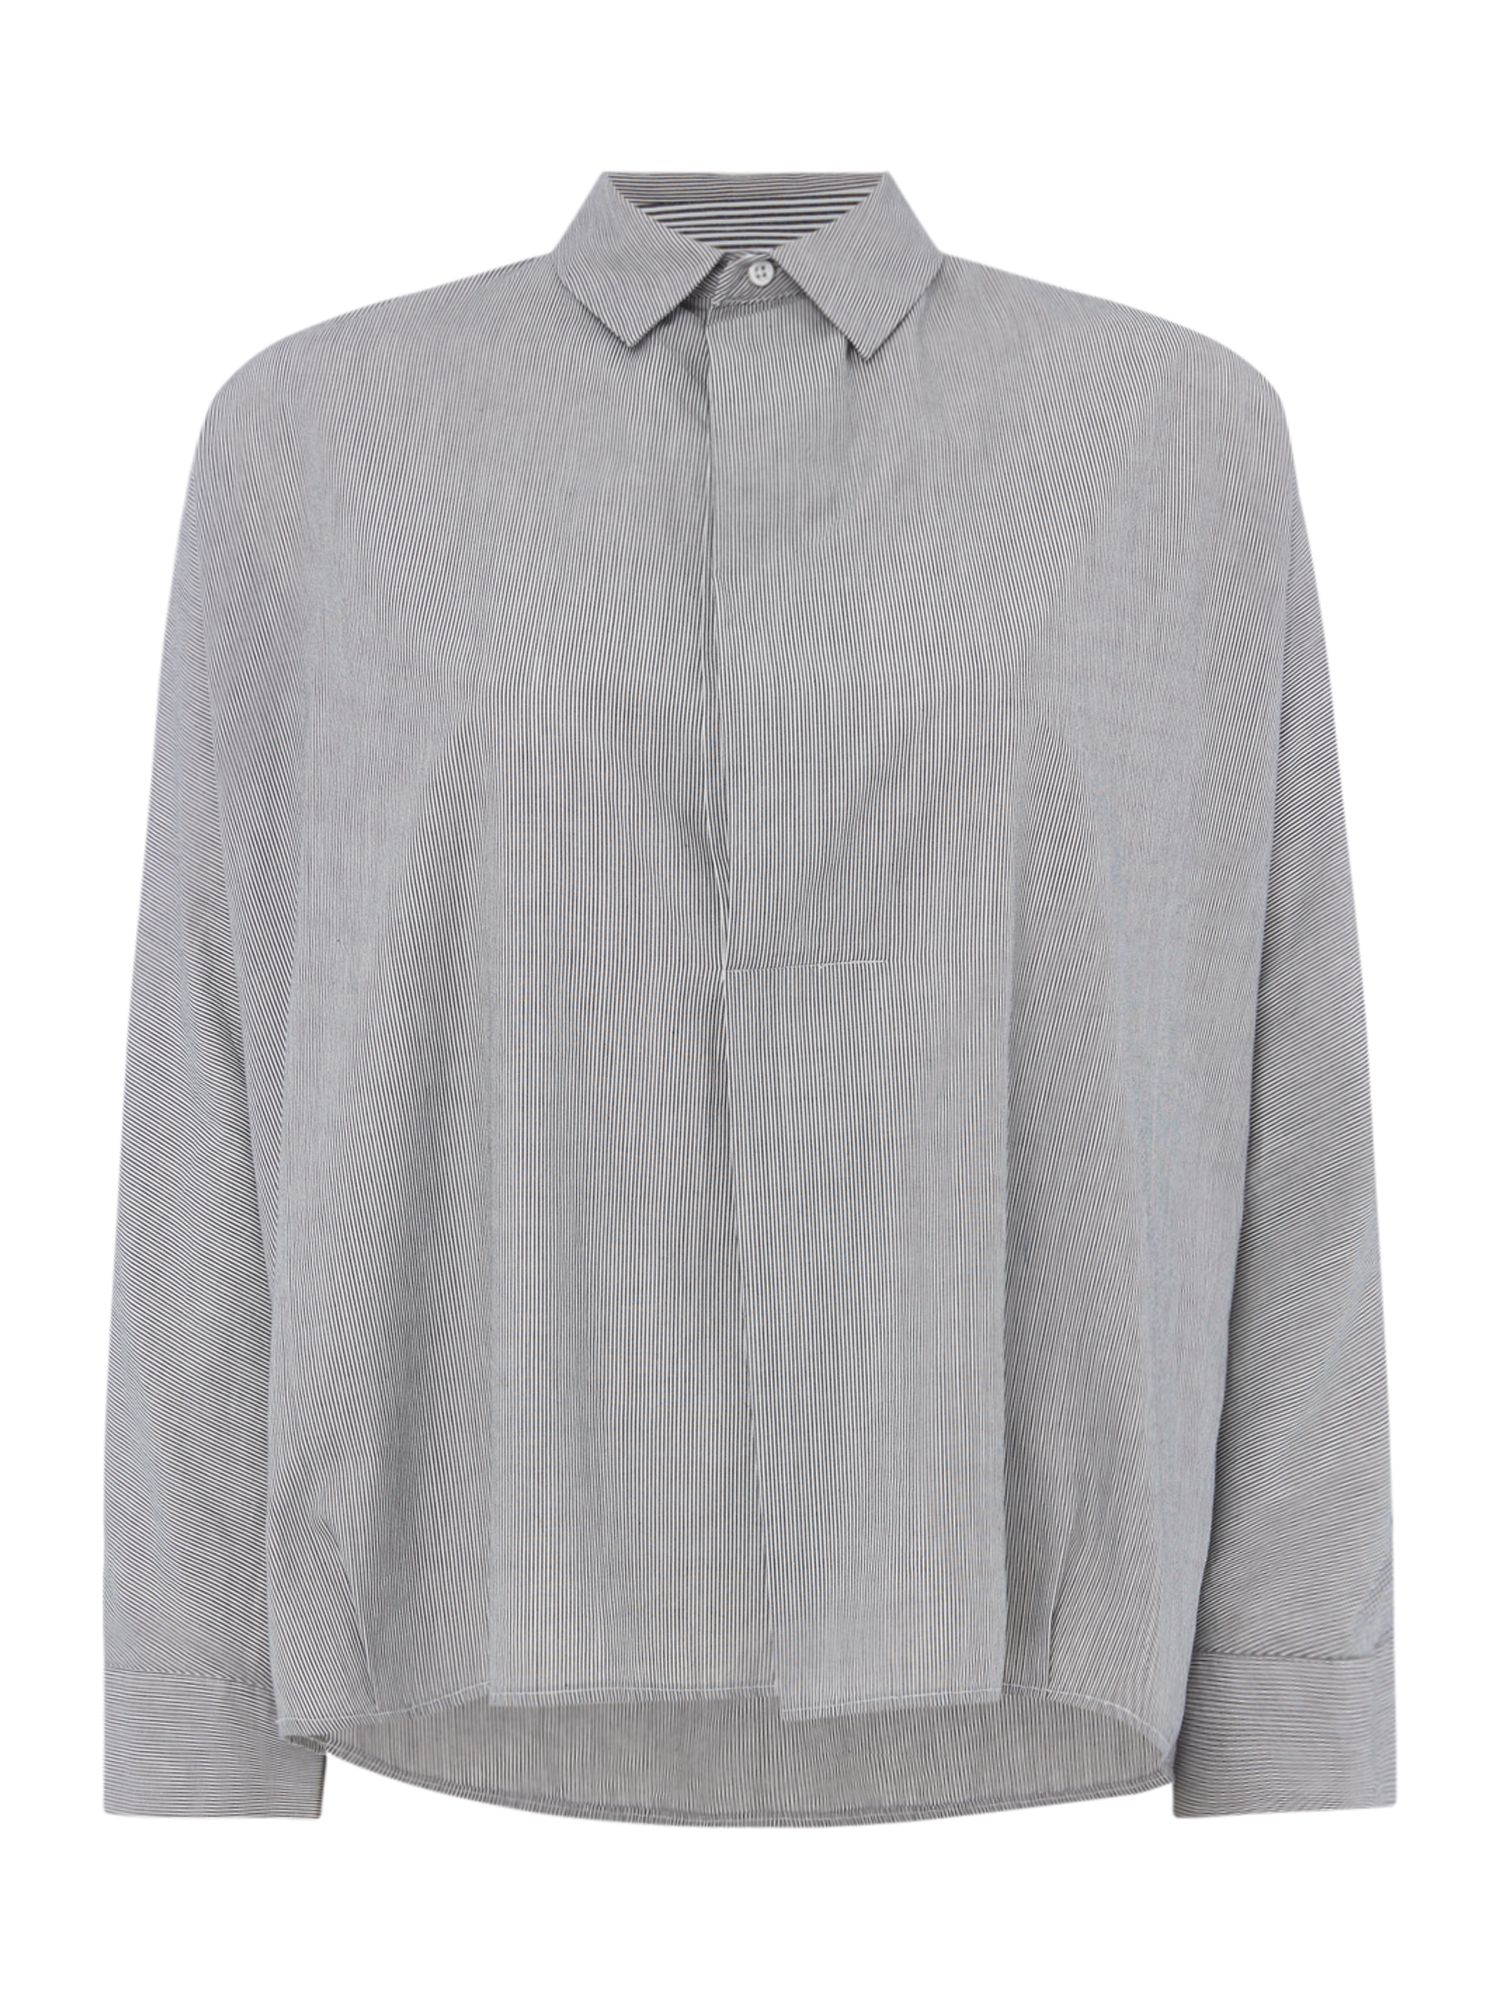 Maison De Nimes Jakki Poplin Stripe Mix Shirt, Grey